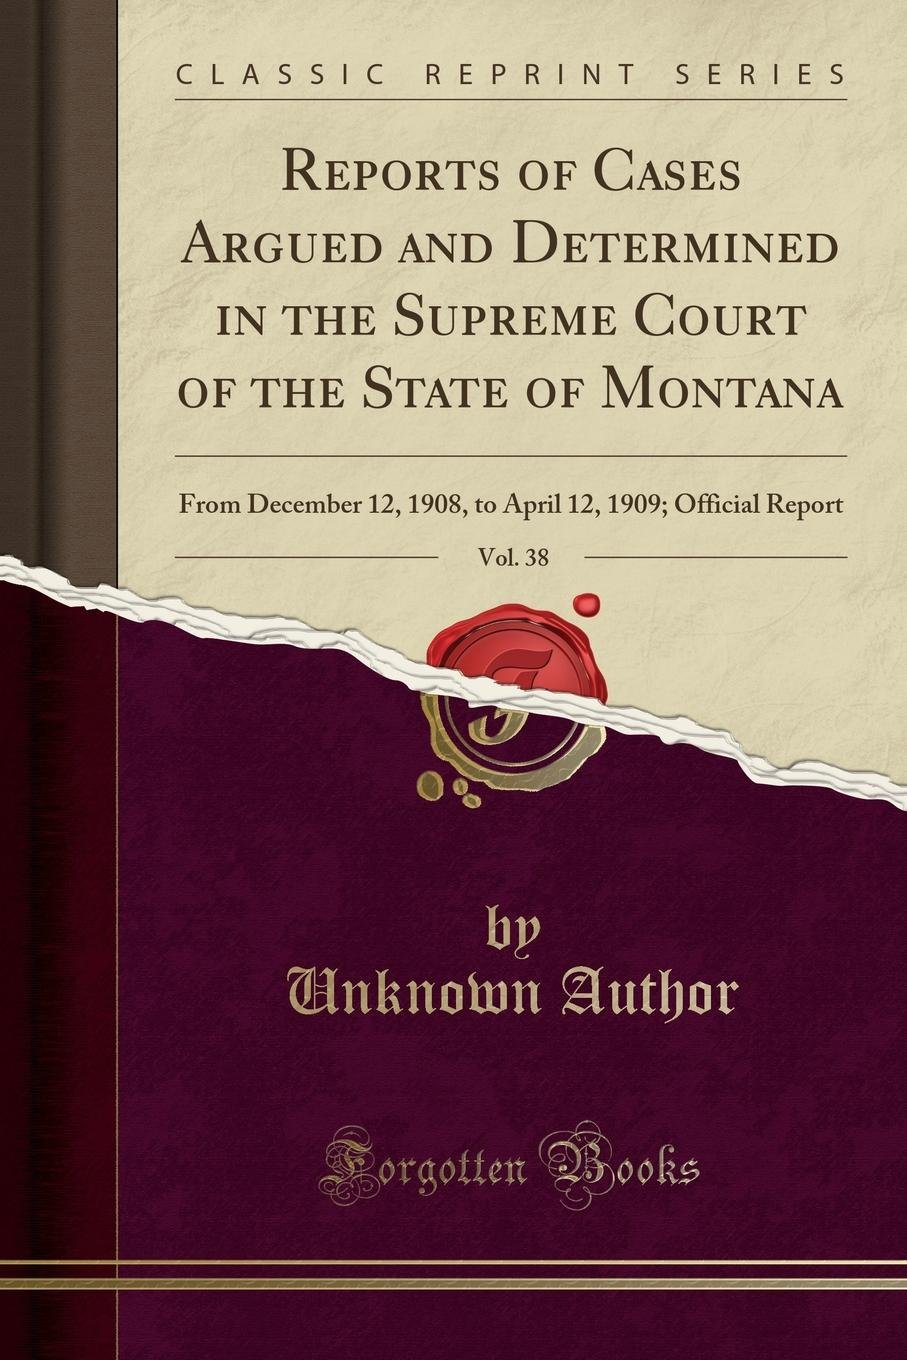 Reports of Cases Argued and Determined in the Supreme Court of the State of Montana, Vol. 38: From December 12, 1908, to April 12, 1909; Official Report (Classic Reprint) PDF